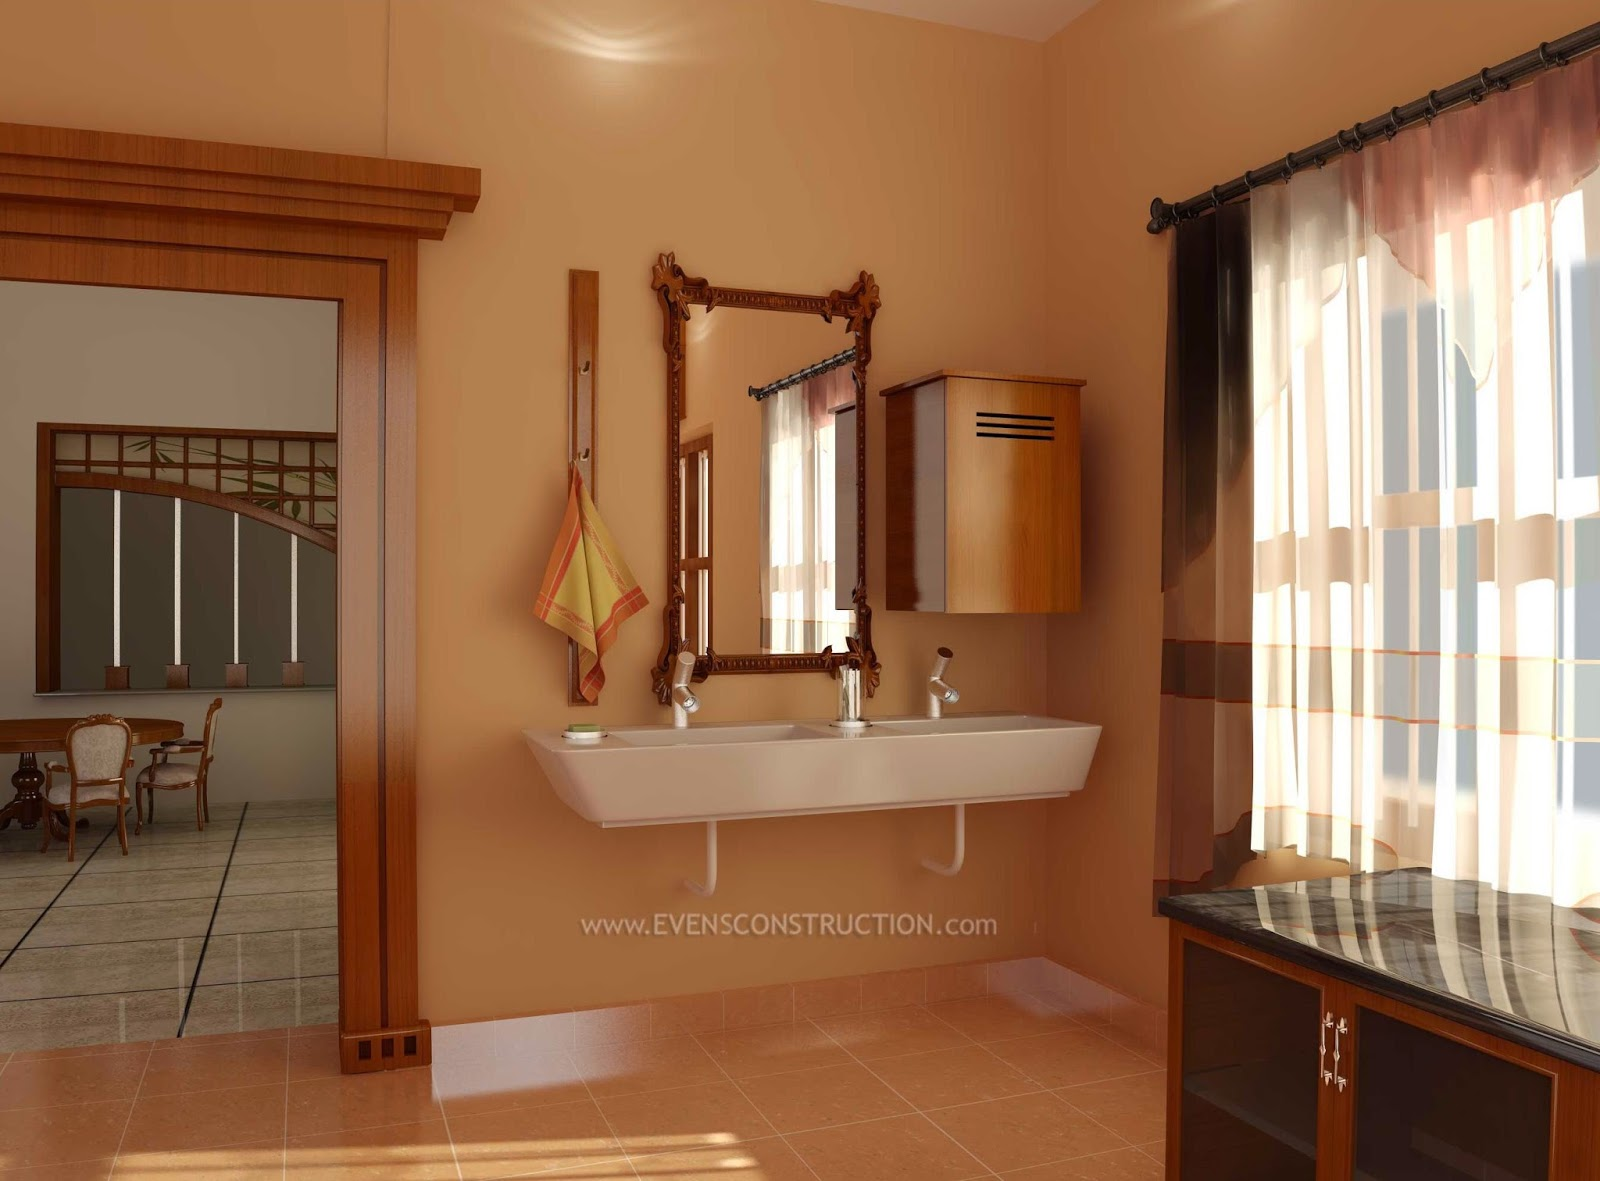 Evens Construction Pvt Ltd: Wash counter in dining room